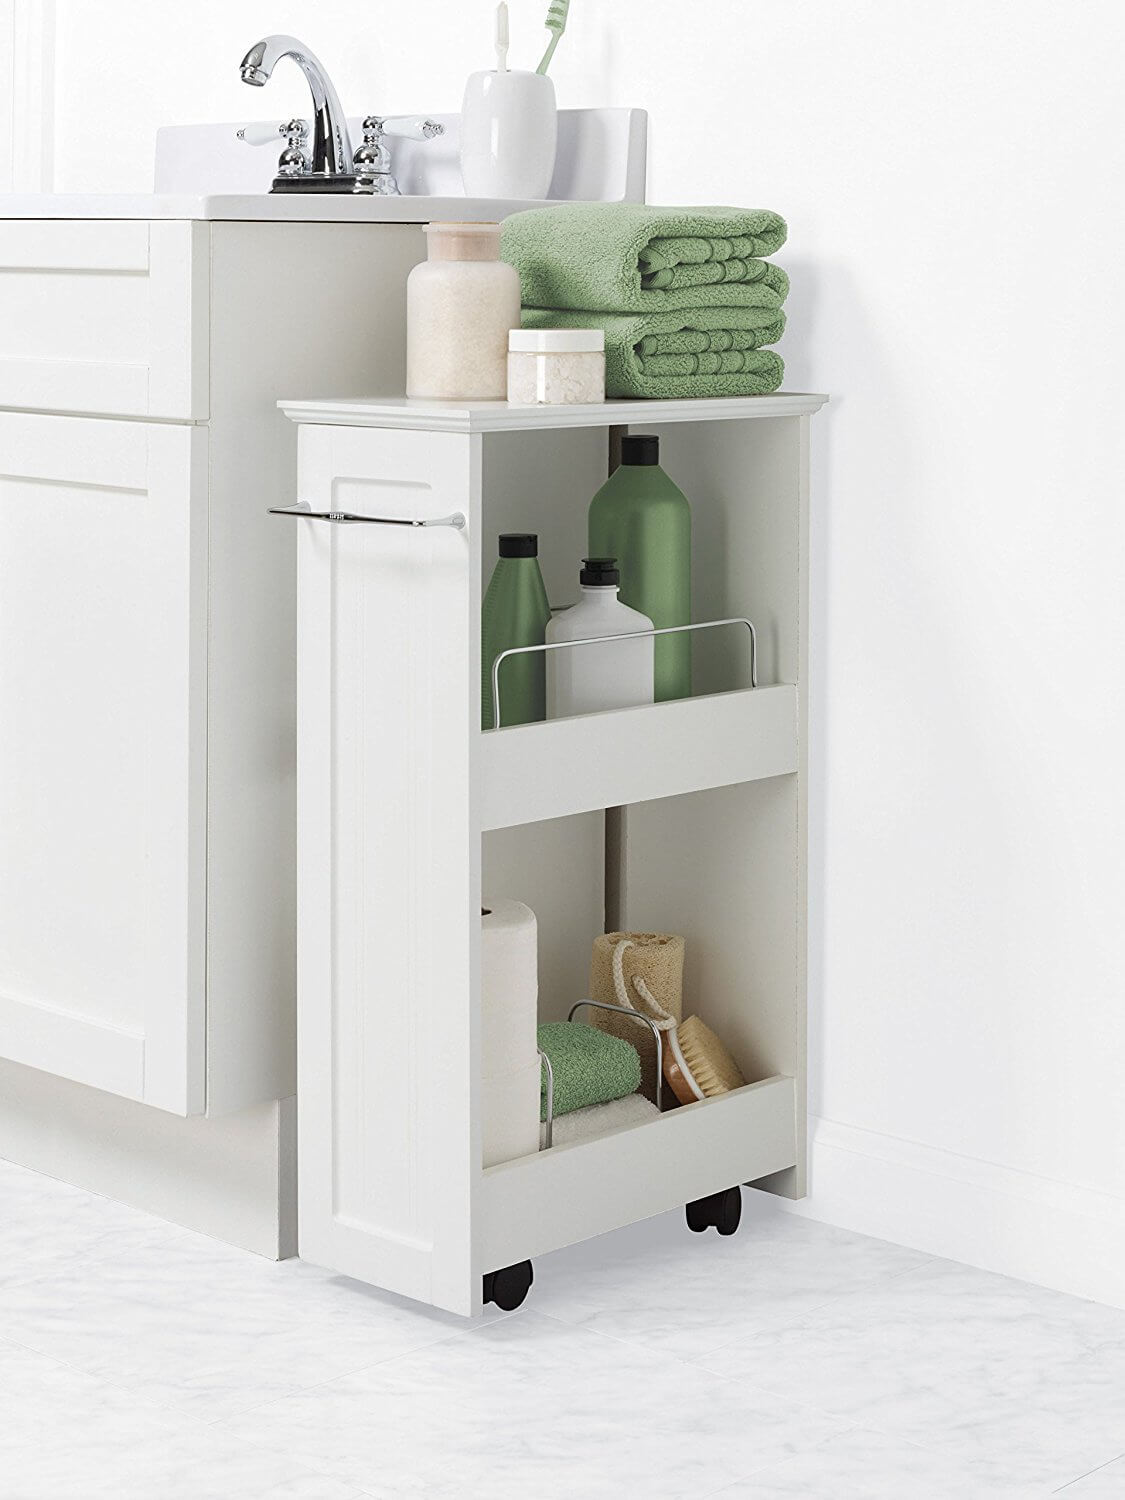 white wooden small narrow slim cart and closet uk of bathroom size sideboards full storage shelves stor cabinets tall cabinet